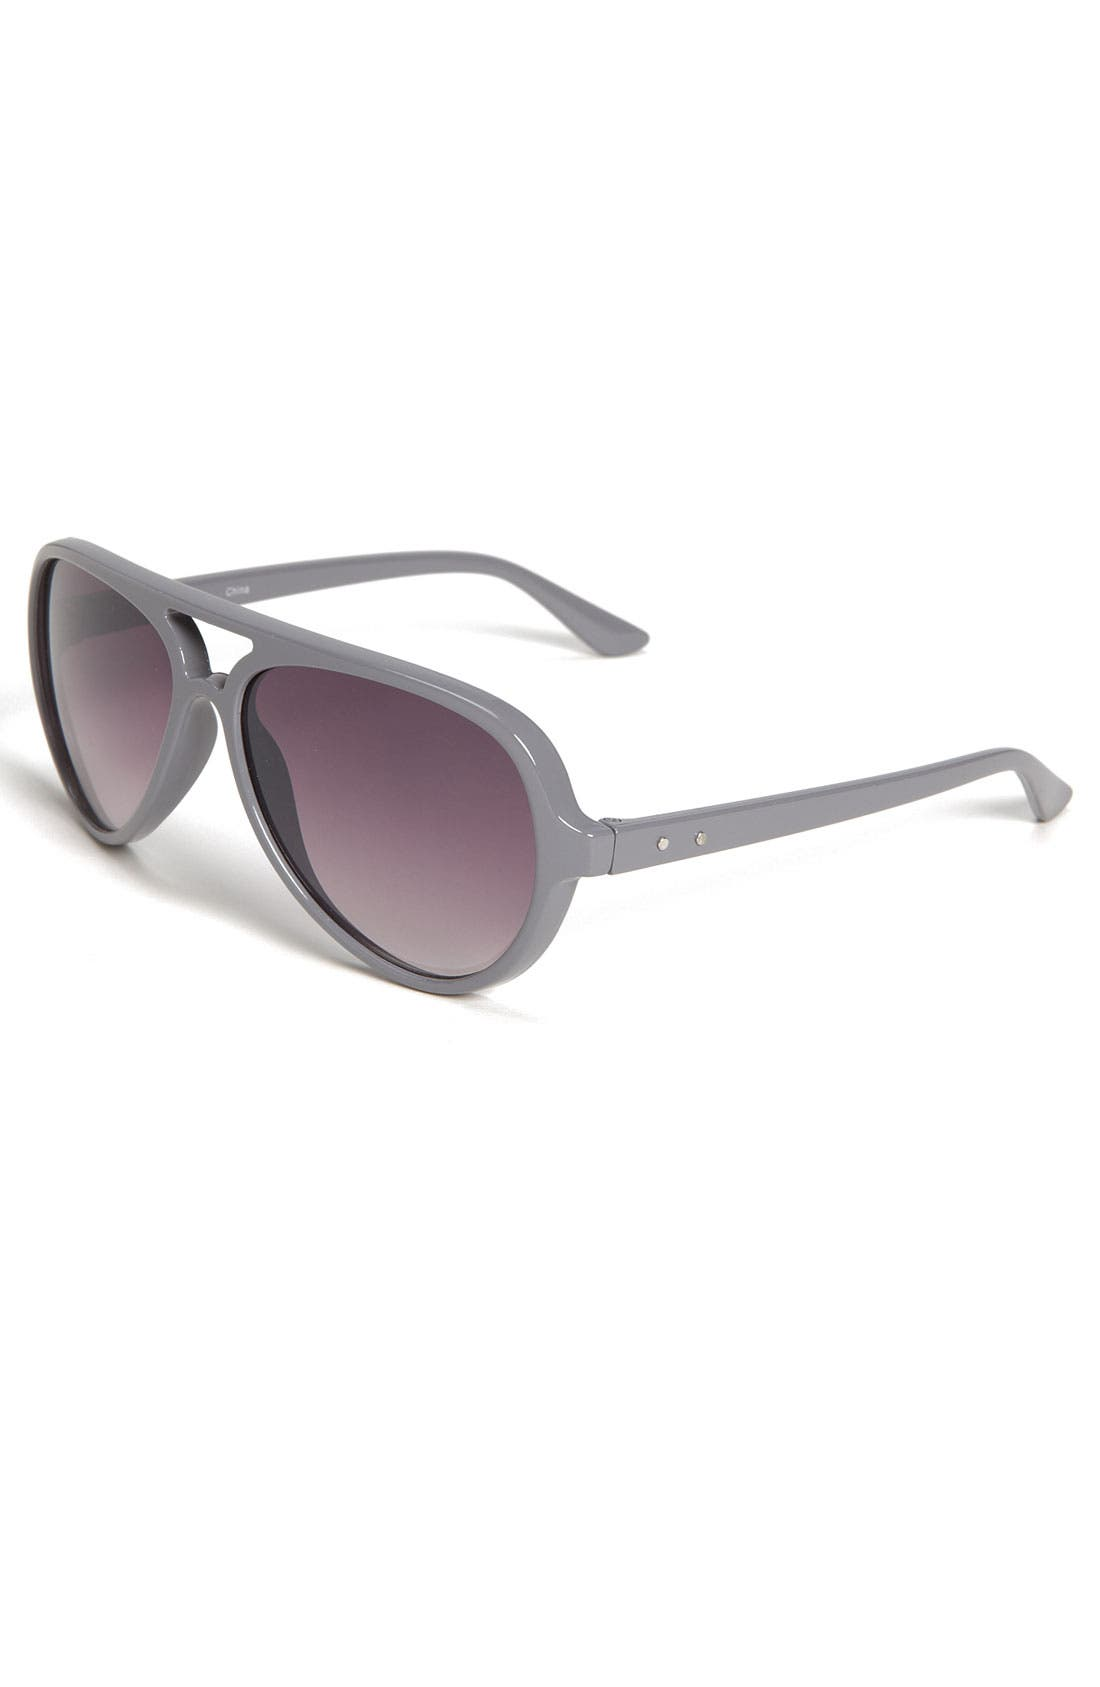 Alternate Image 1 Selected - Icon Eyewear 'Nick' Aviator Sunglasses (Big Boys)